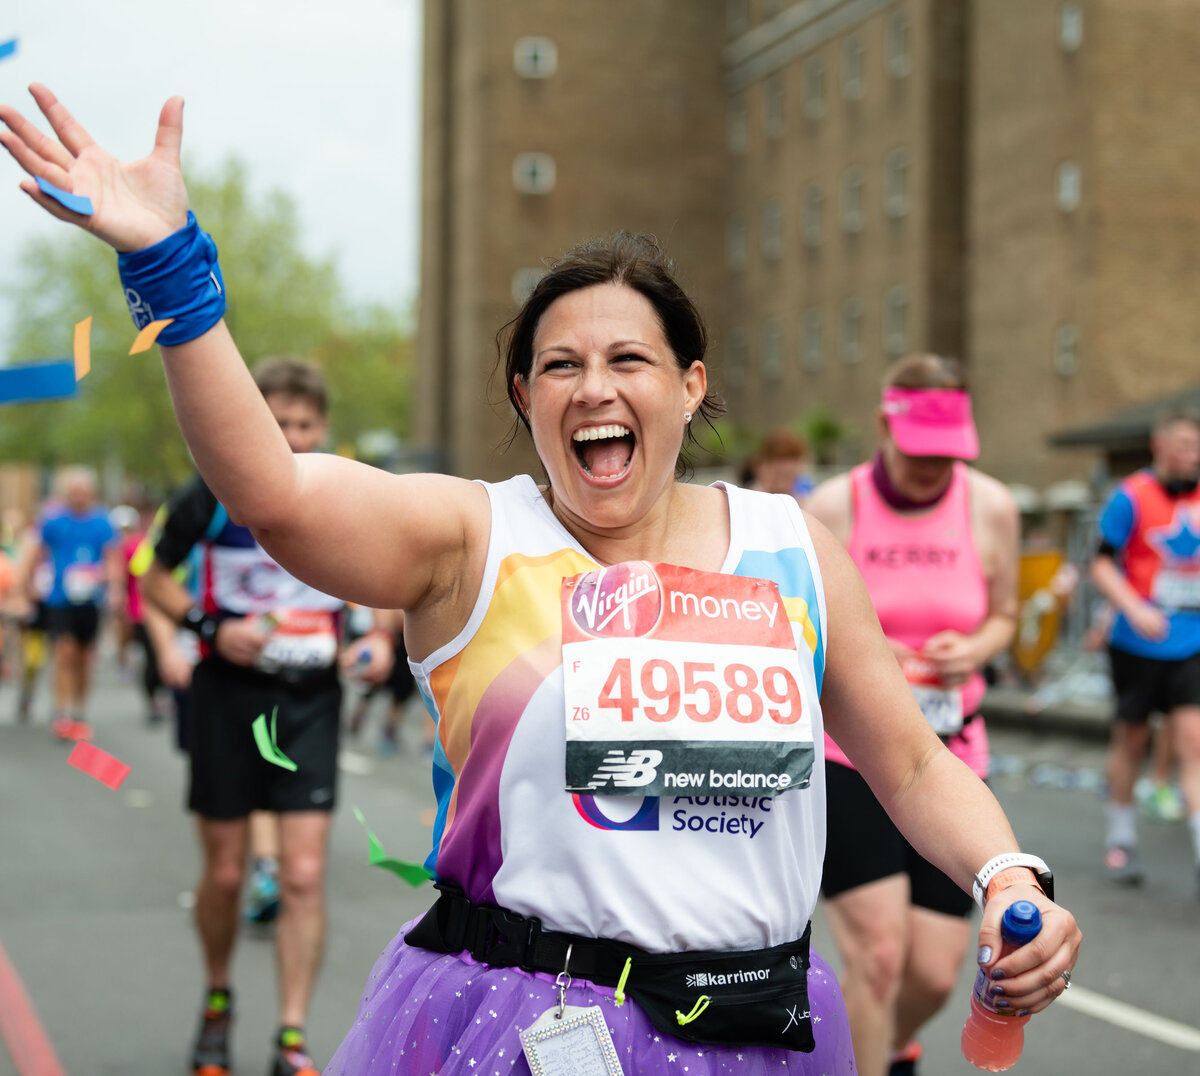 Congratulations to all #TeamAutism runners who did a fantastic job yesterday raising money for the National Autistic Society at the London Marathon! // Photos by www.sportsphotographer.co.uk   @sportsphotographyuk